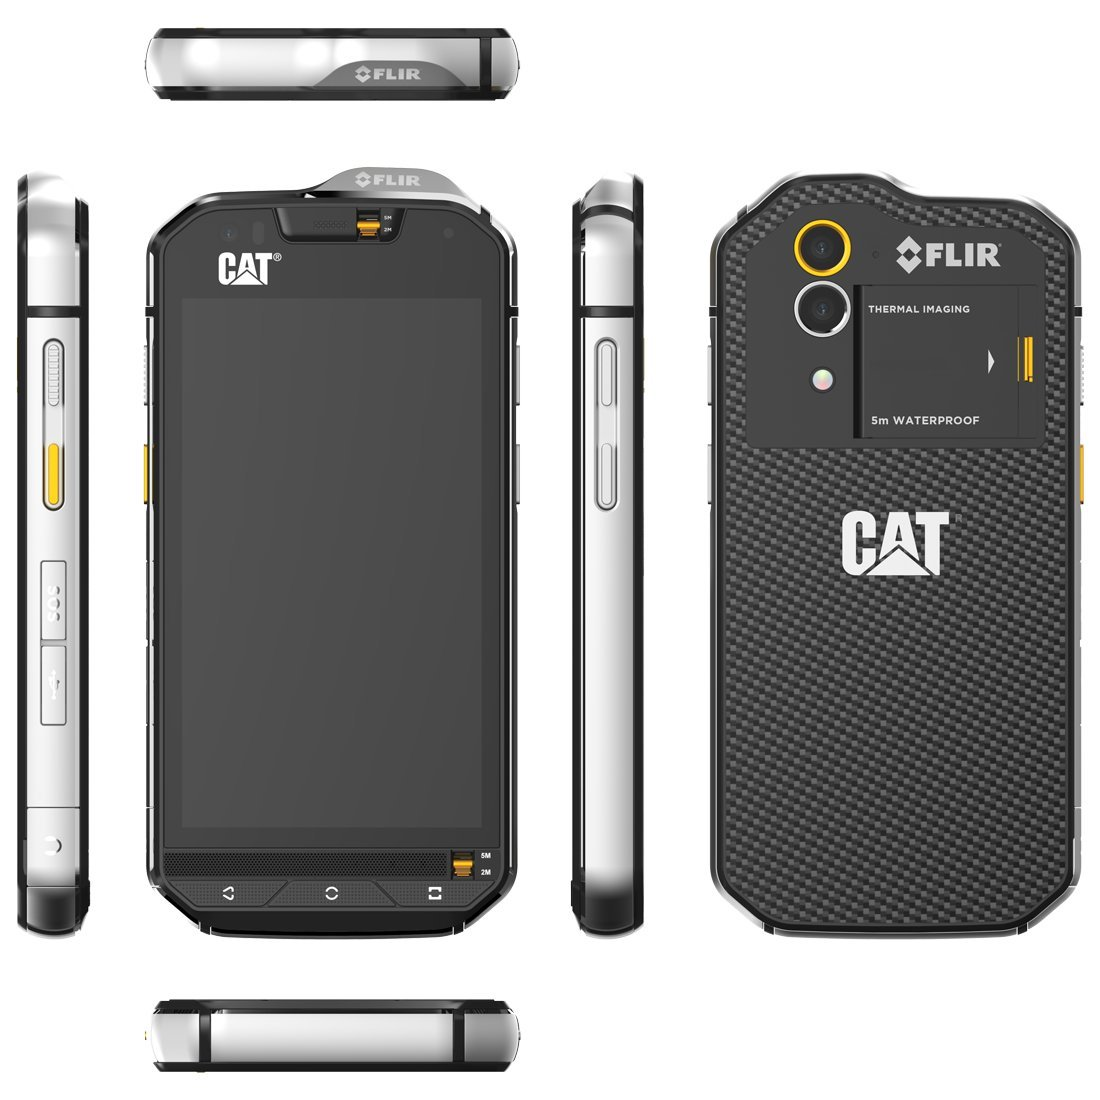 Cat Phones S60 Rugged Waterproof Smartphone With Mobile Phone Circuit Boards Integrated Flir Camera Cell Accessories